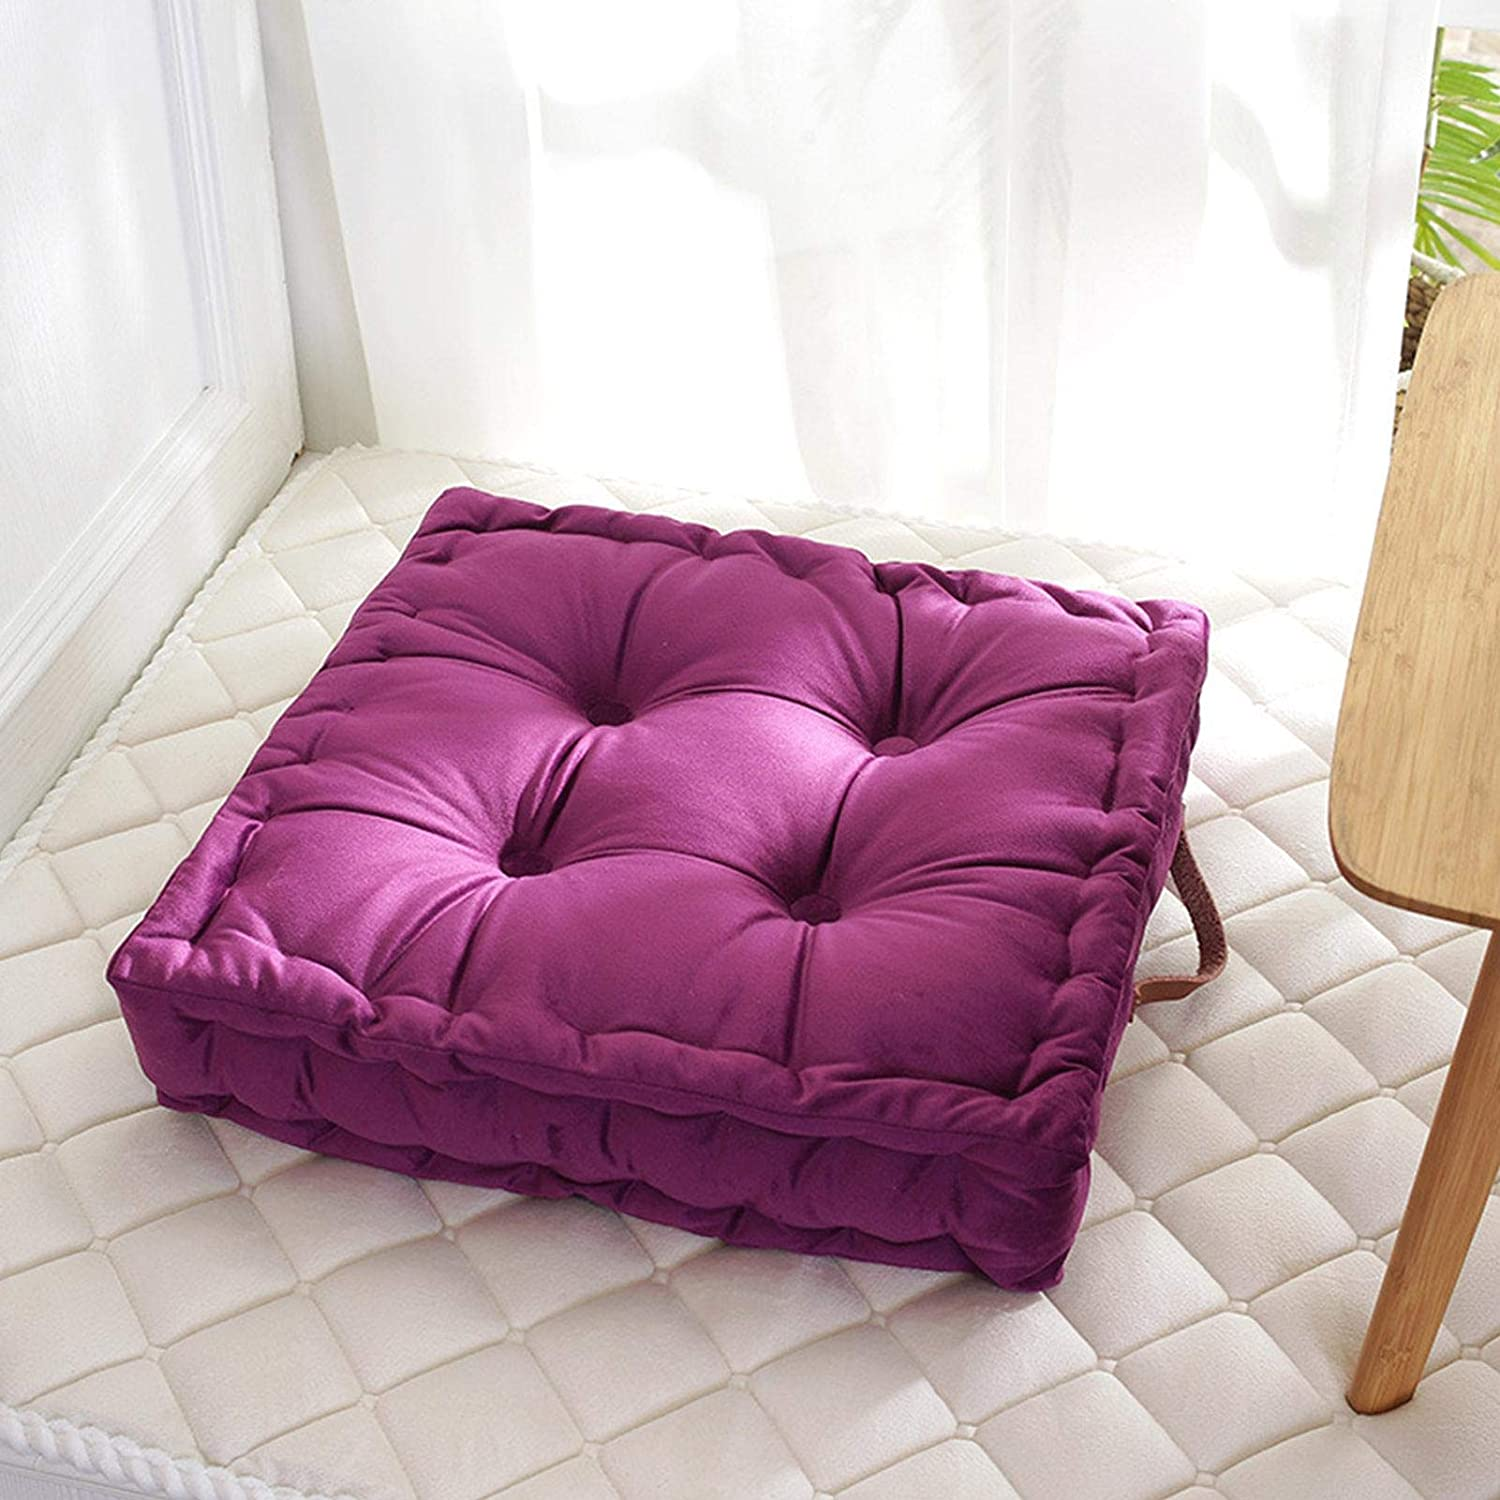 5 Color Thick Floor Pillow Tufted Tatami Seat Pad for Yoga Meditation Living Room Balcony Office Outdoor Besokuse Solid Square Seat Cushion